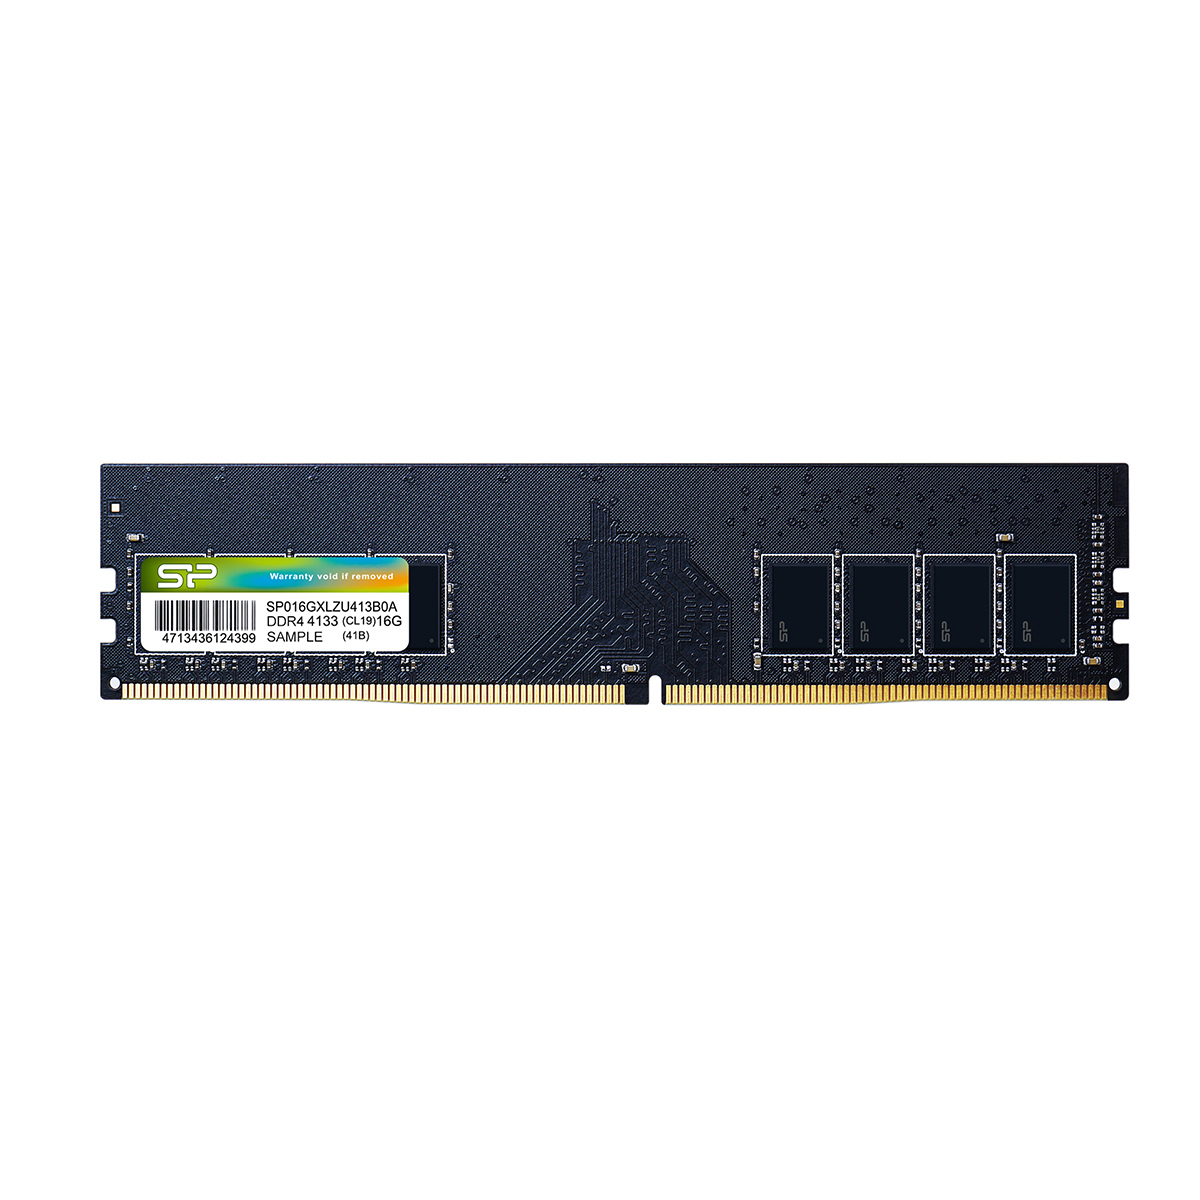 XPOWER AirCool DDR4 Gaming Memory Module